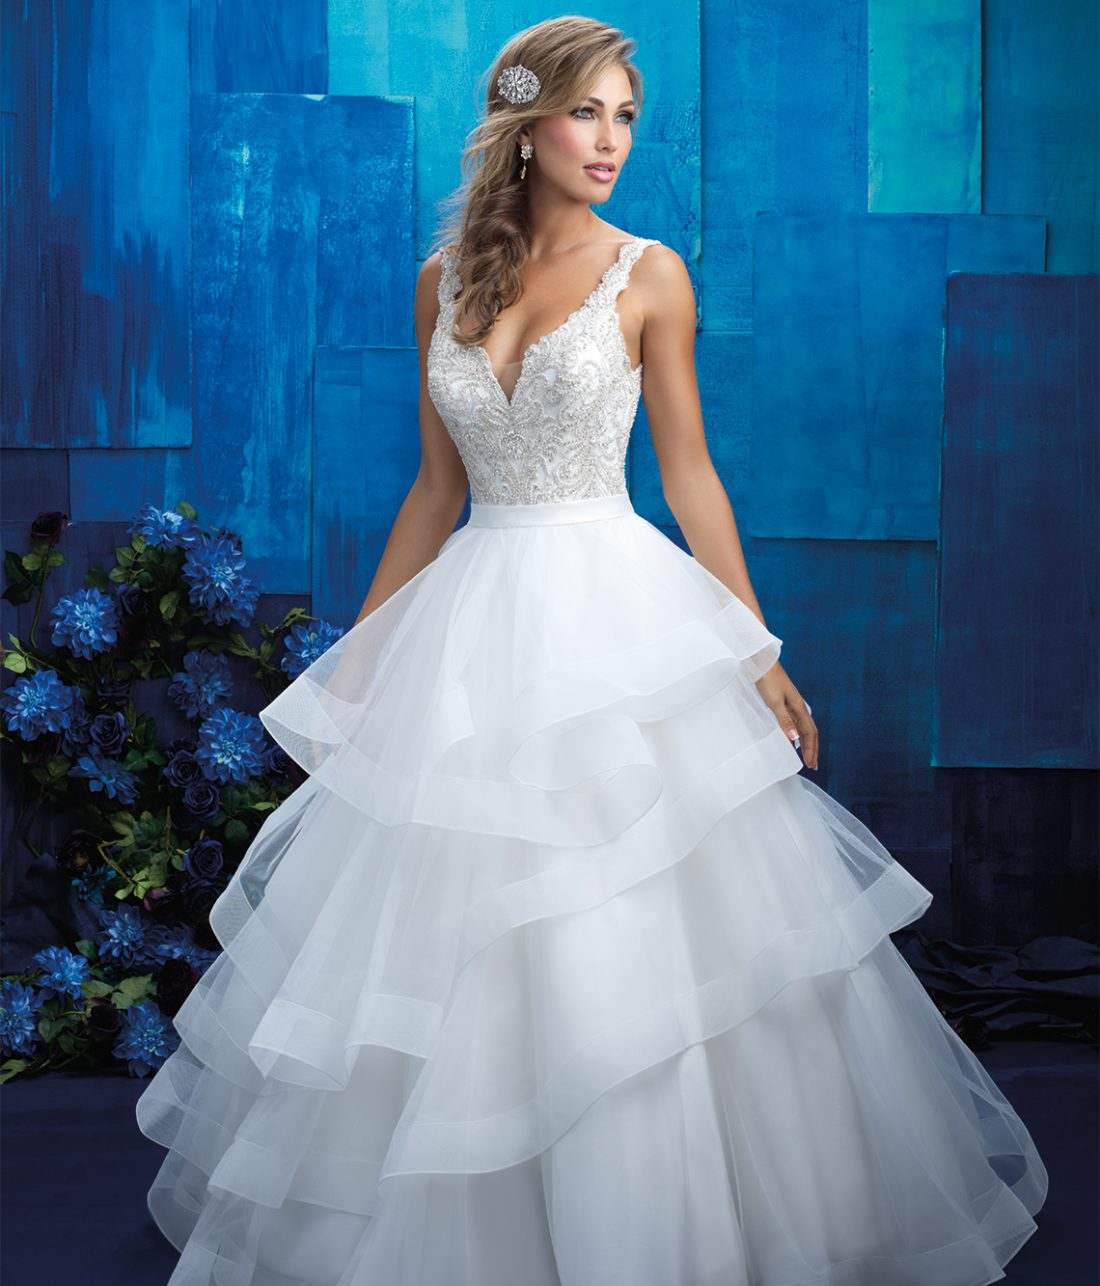 Allure Bridals Style 9418 |This fairytale frock features dreamy organza and tulle, with a fitted bodice swathed in sparkling beaded embroidery. $1,572, Brides 2 Be by Hope Mitchell, Rehoboth, Del., www.brides2bebyhope.com